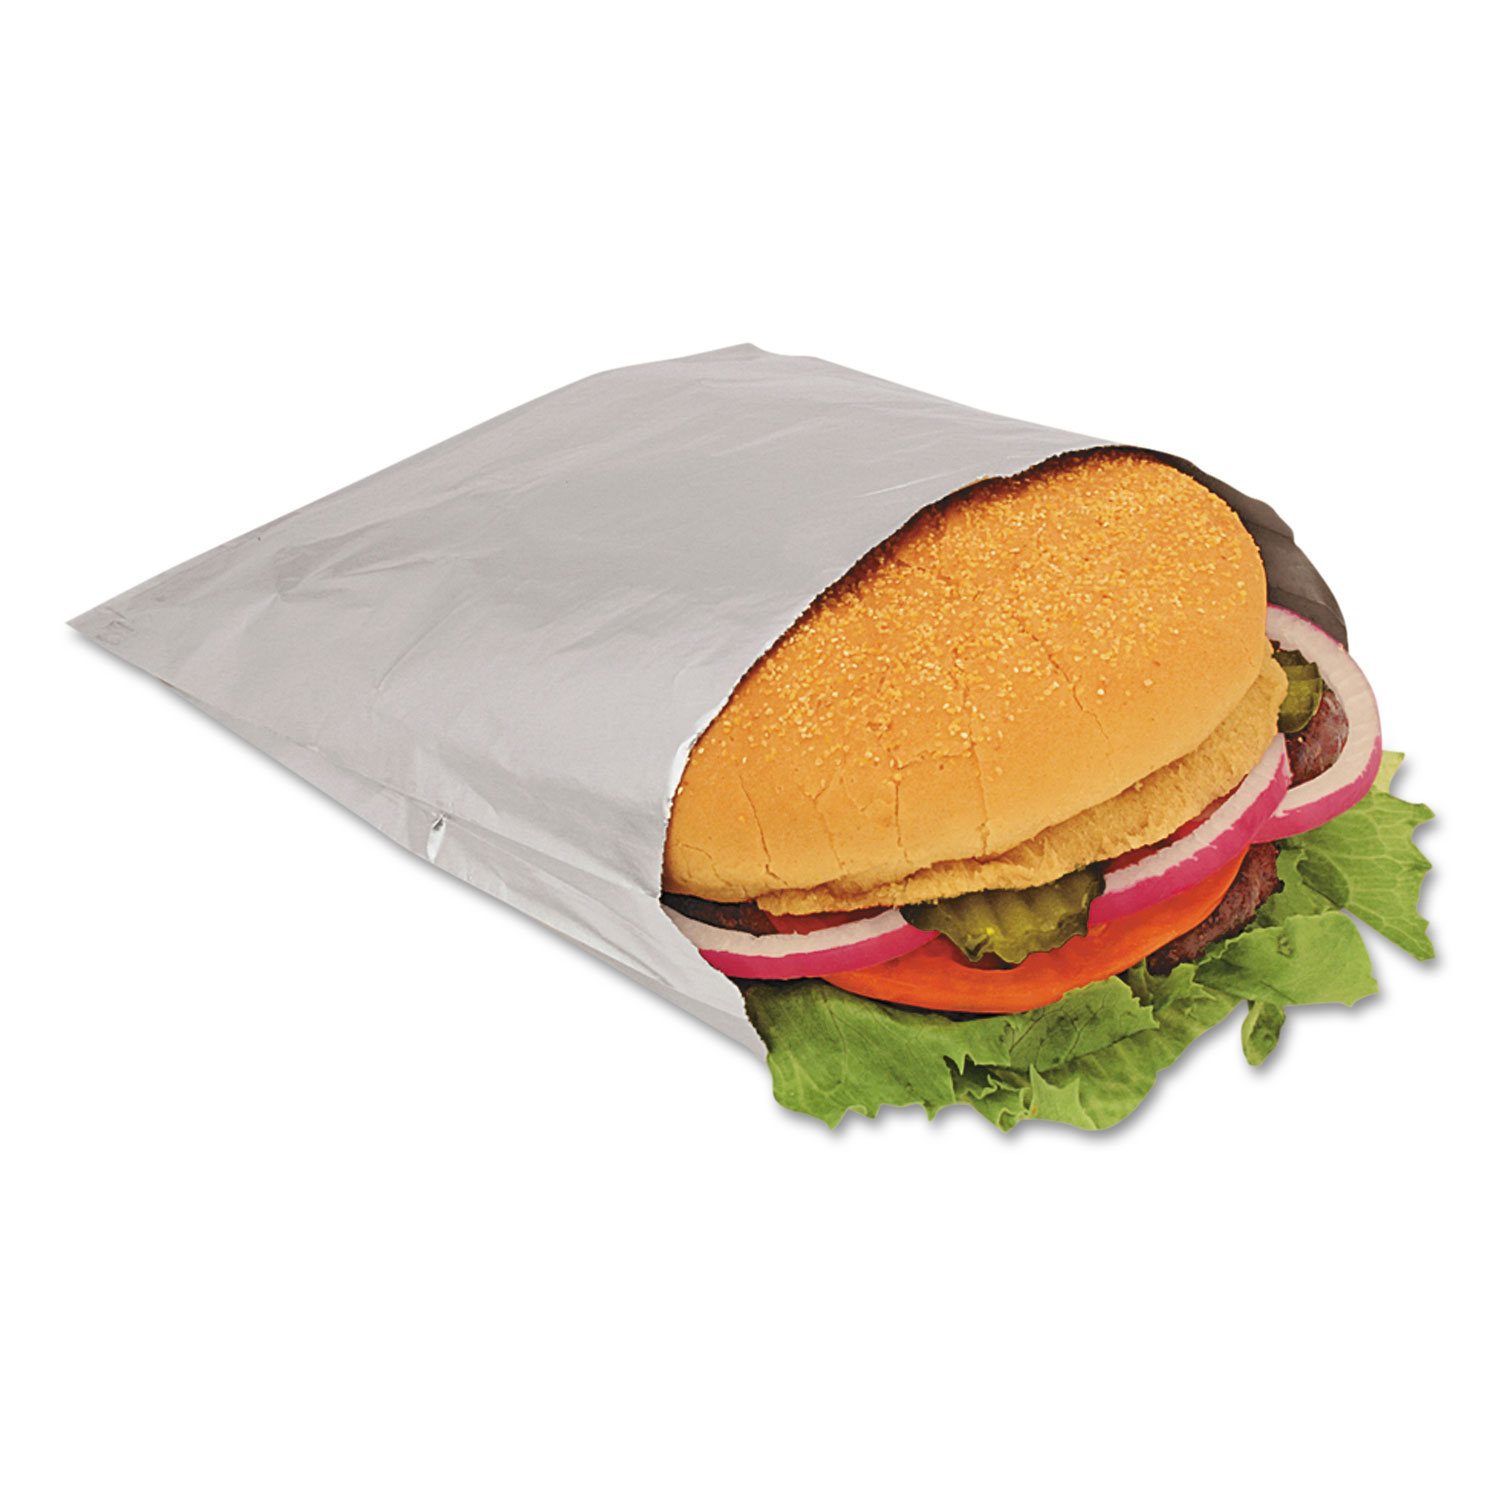 "Foil Single-Serve Bags, 6"" x 6.5"", Silver, 1,000/Carton"